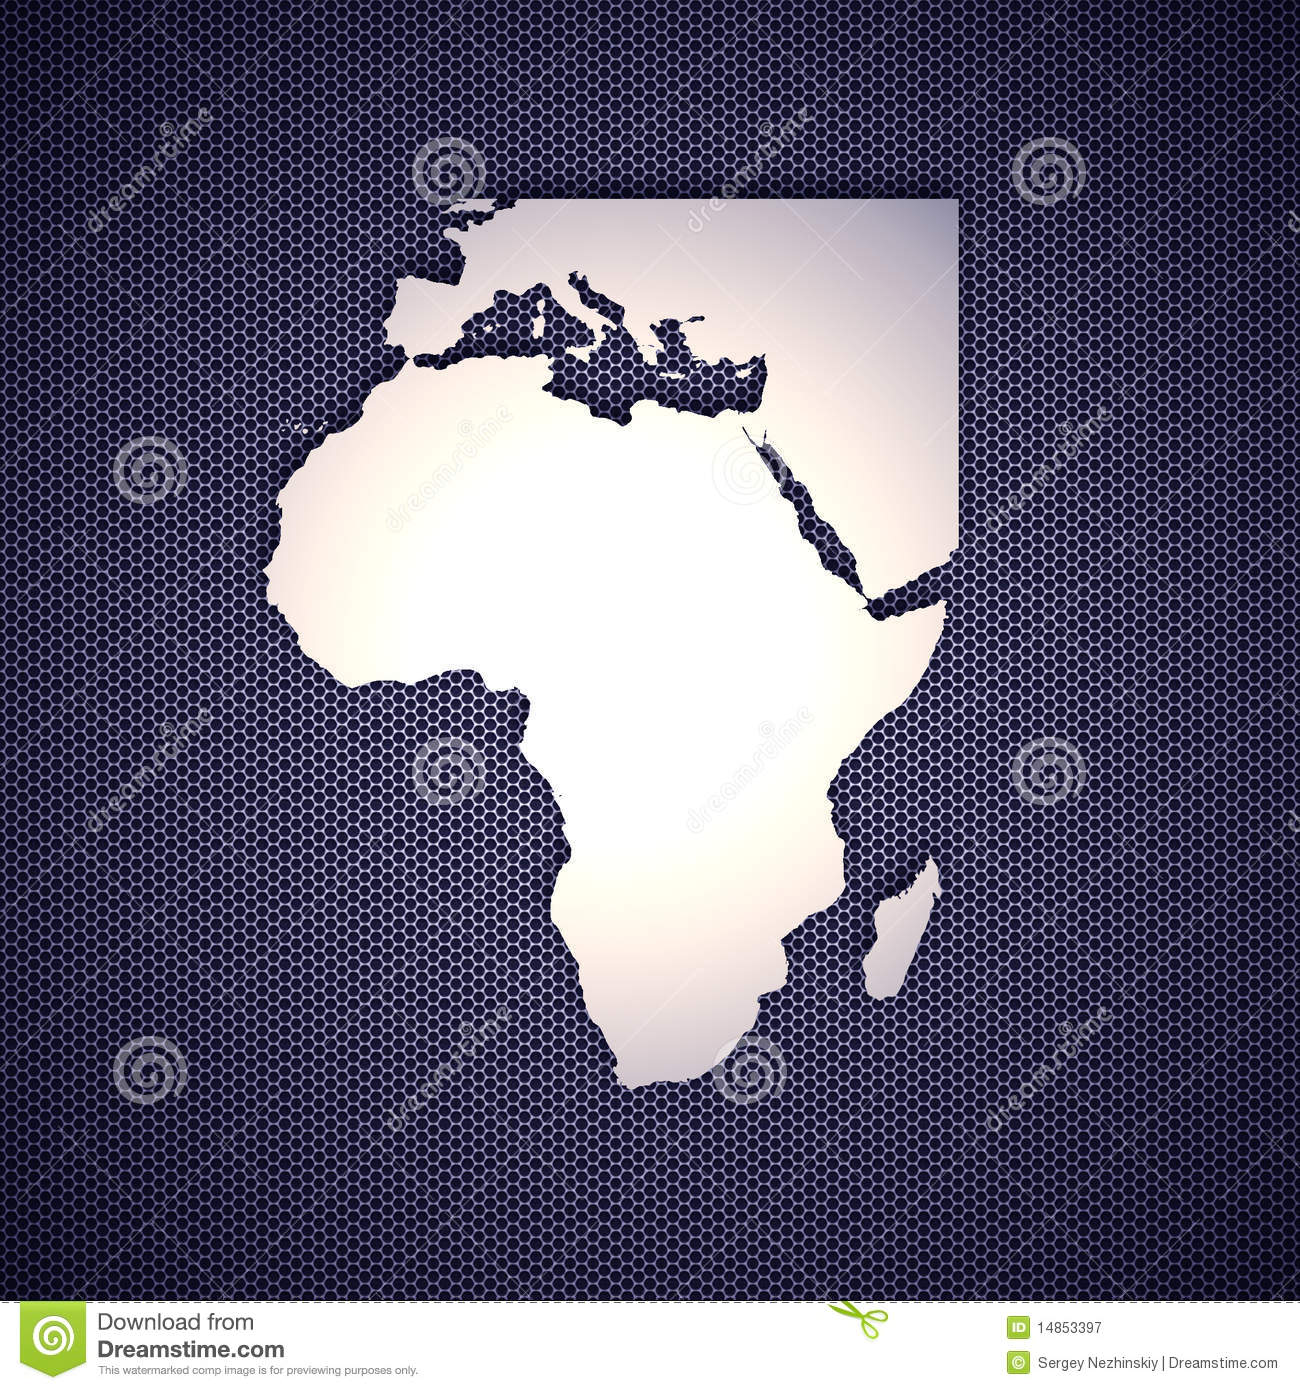 Africa and Europe